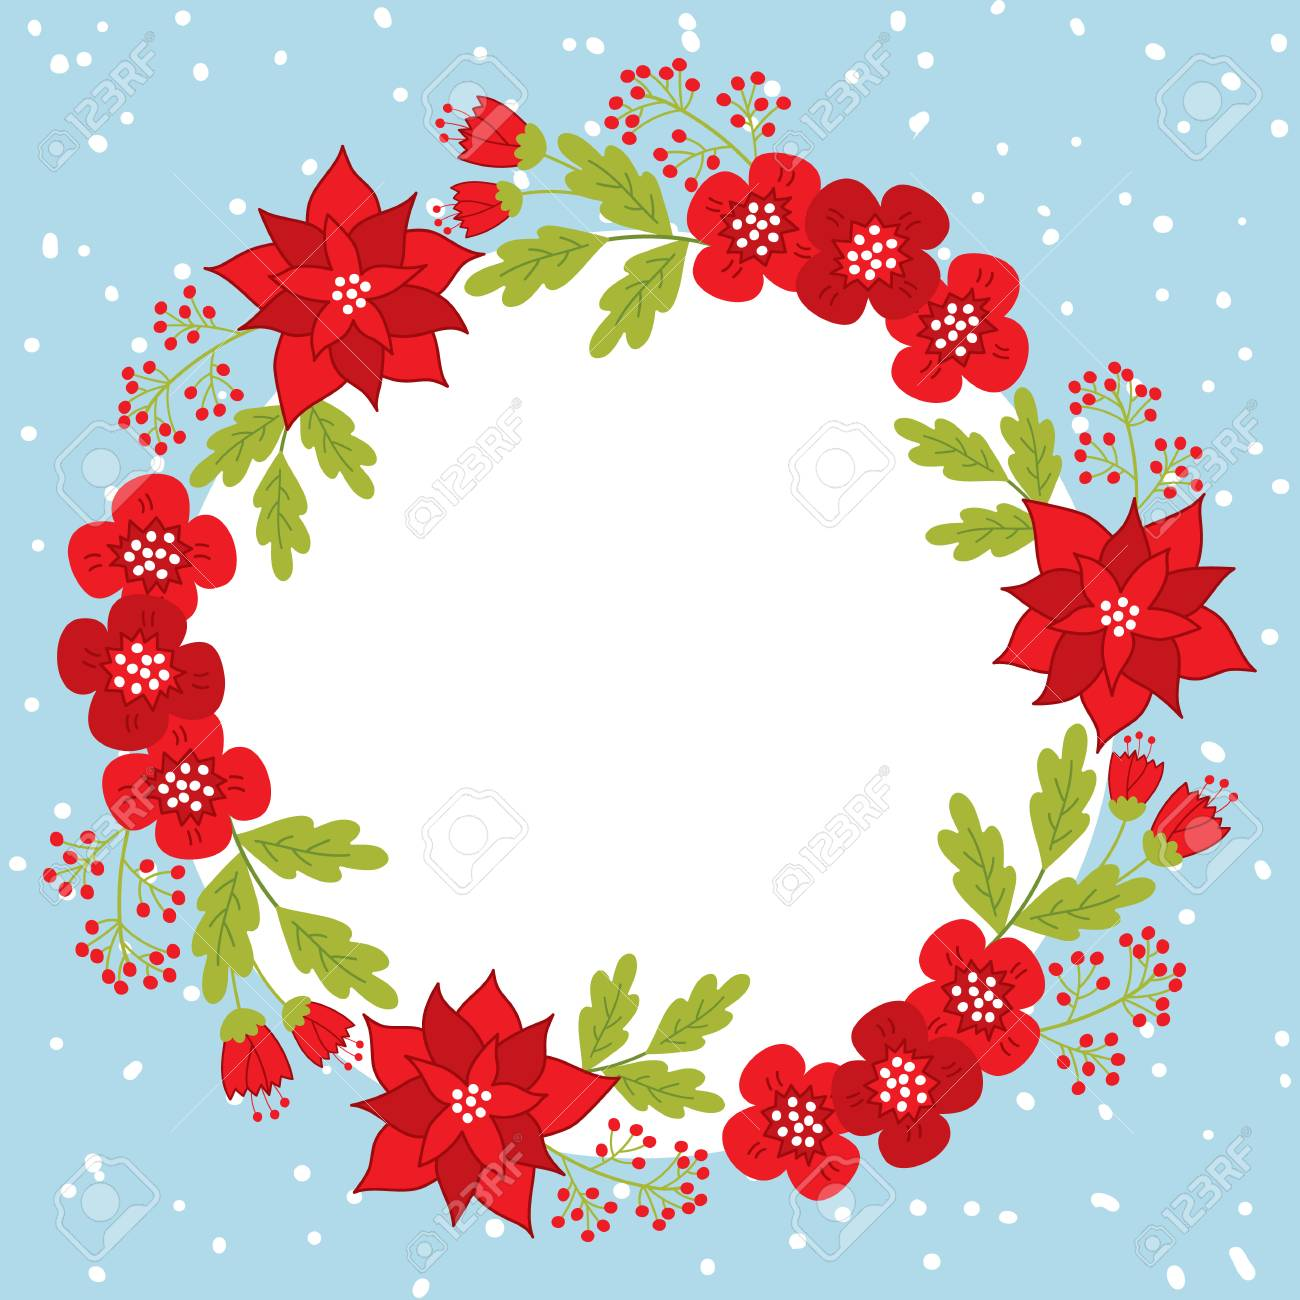 vector vector christmas and new year card template with wreath on snow background vector floral wreath with poinsettia and red berries